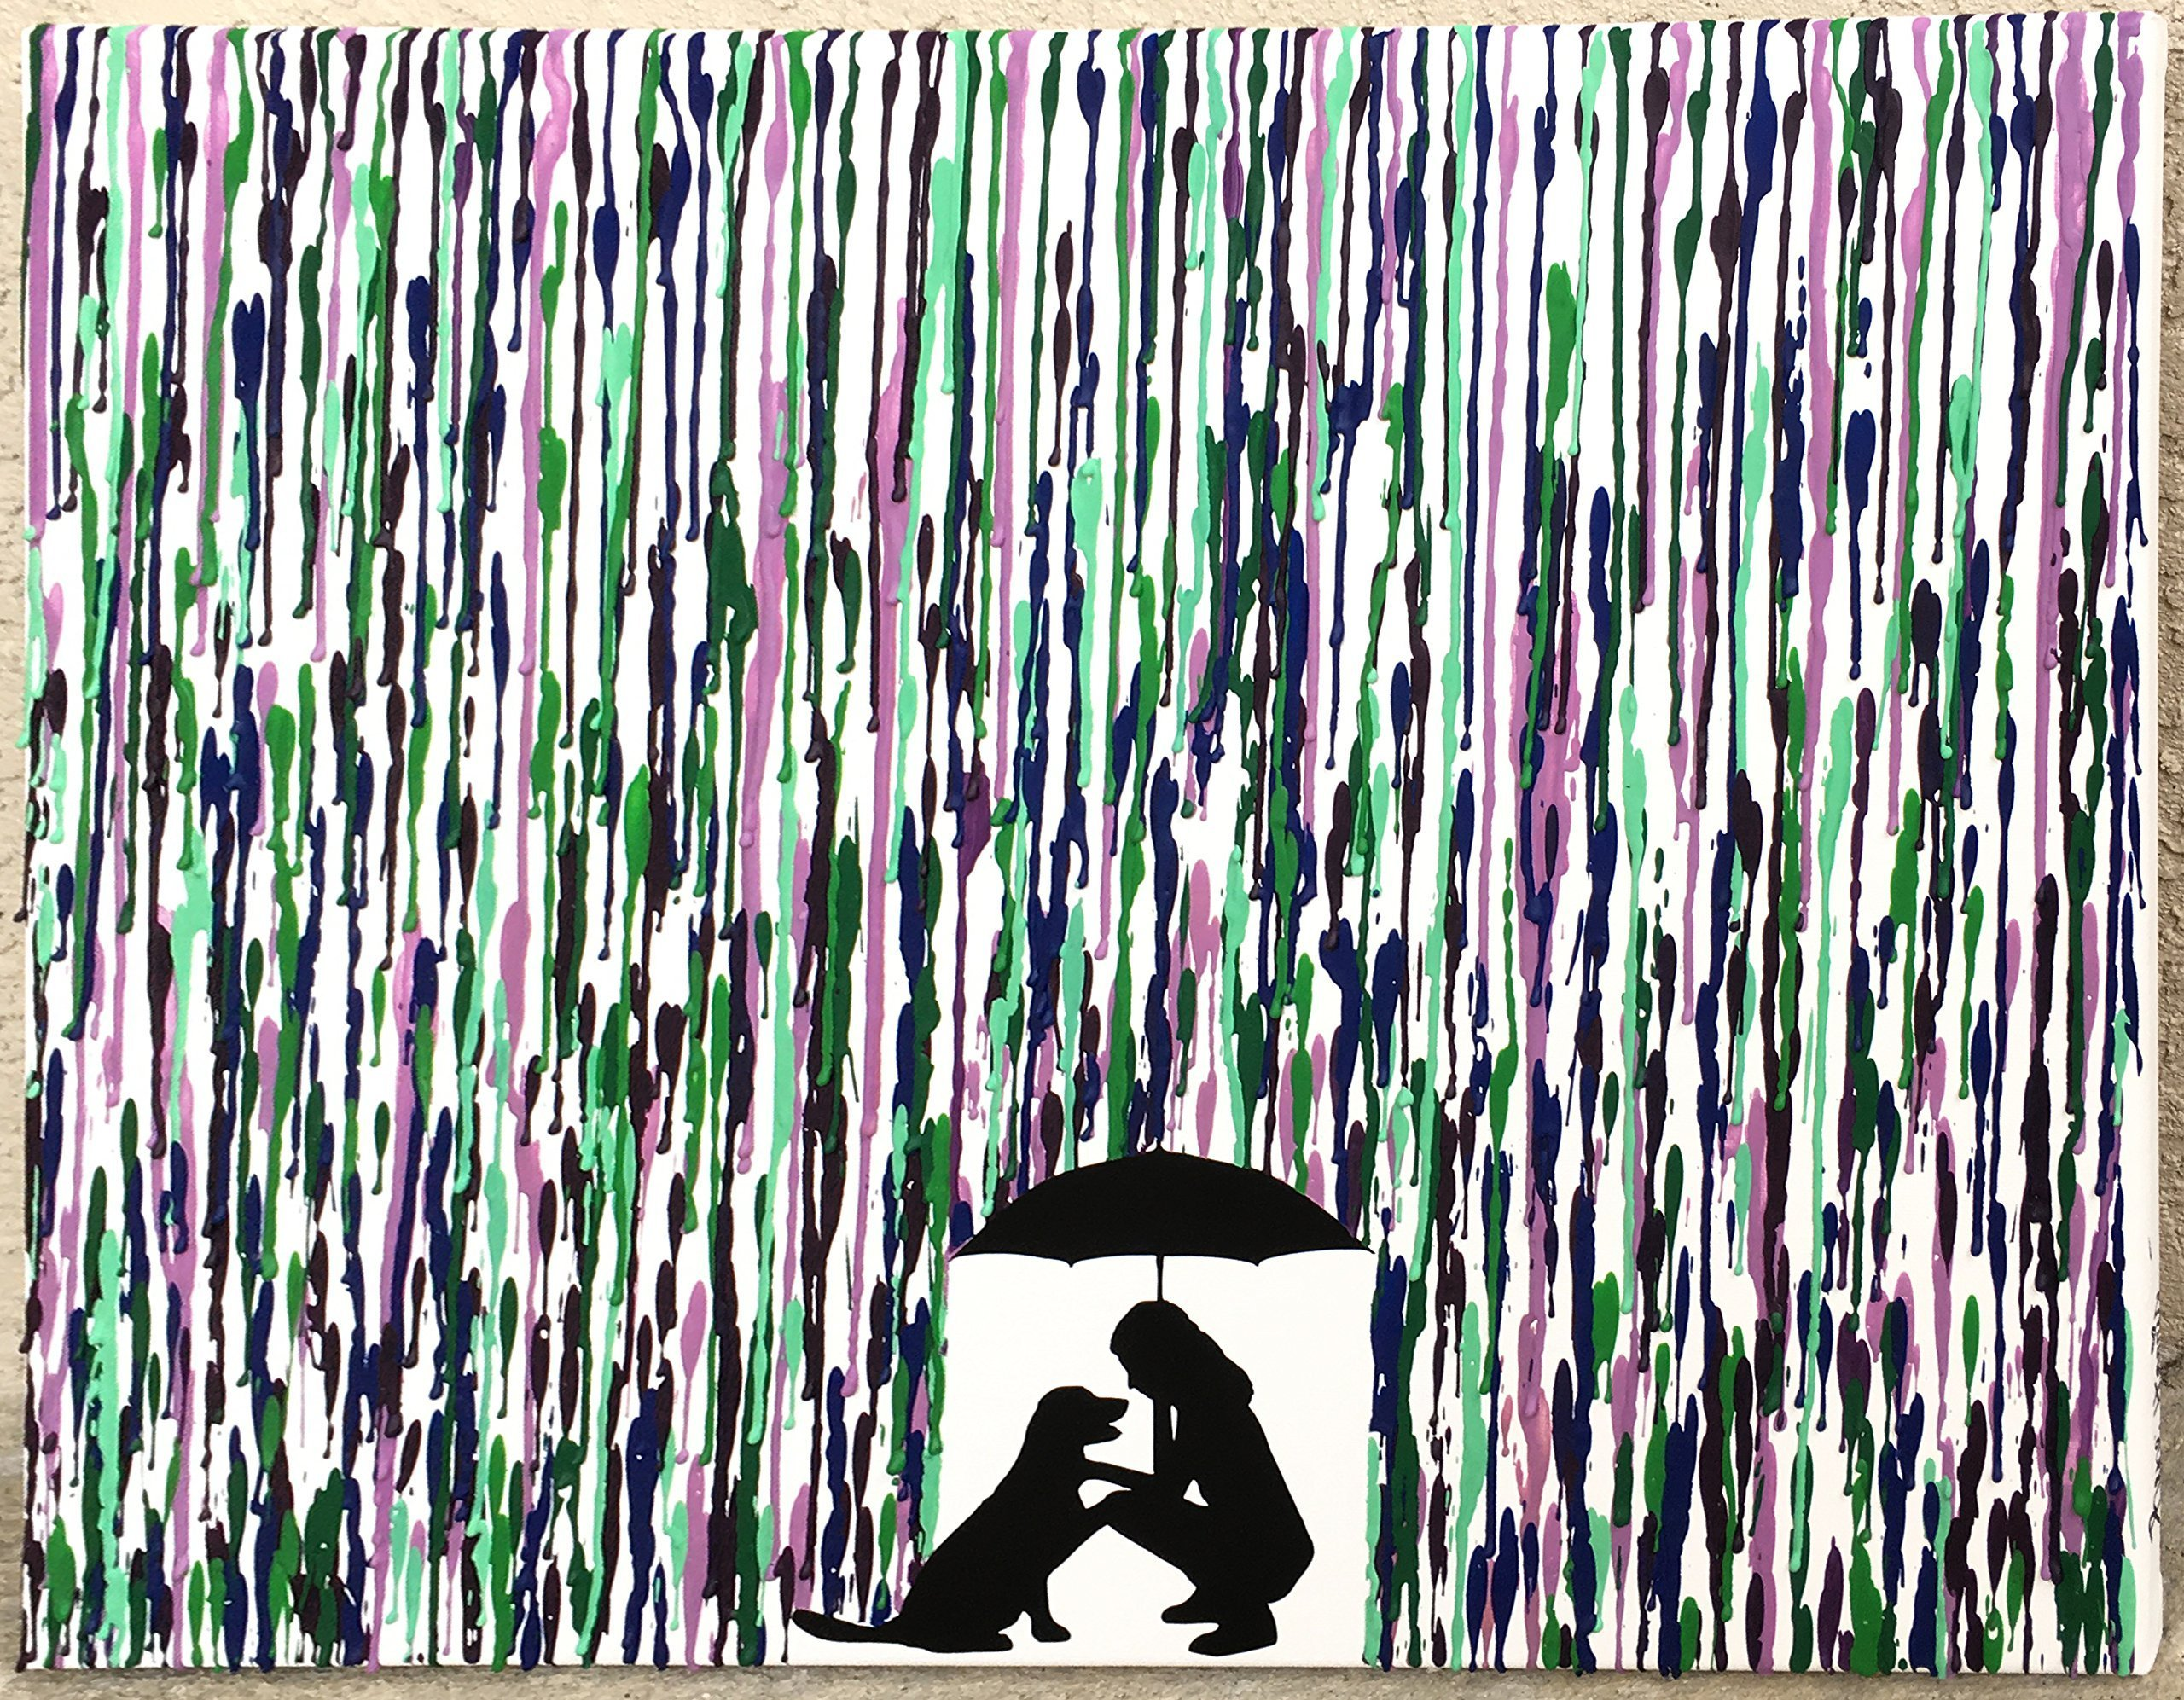 Melted Crayon Art, Dog Lover Gift, Girl and Her Dog Art, New Dog Gift, Dog Silhouette Art, Pet Silhouette Art, Pet Memorial Gifts 16x20''